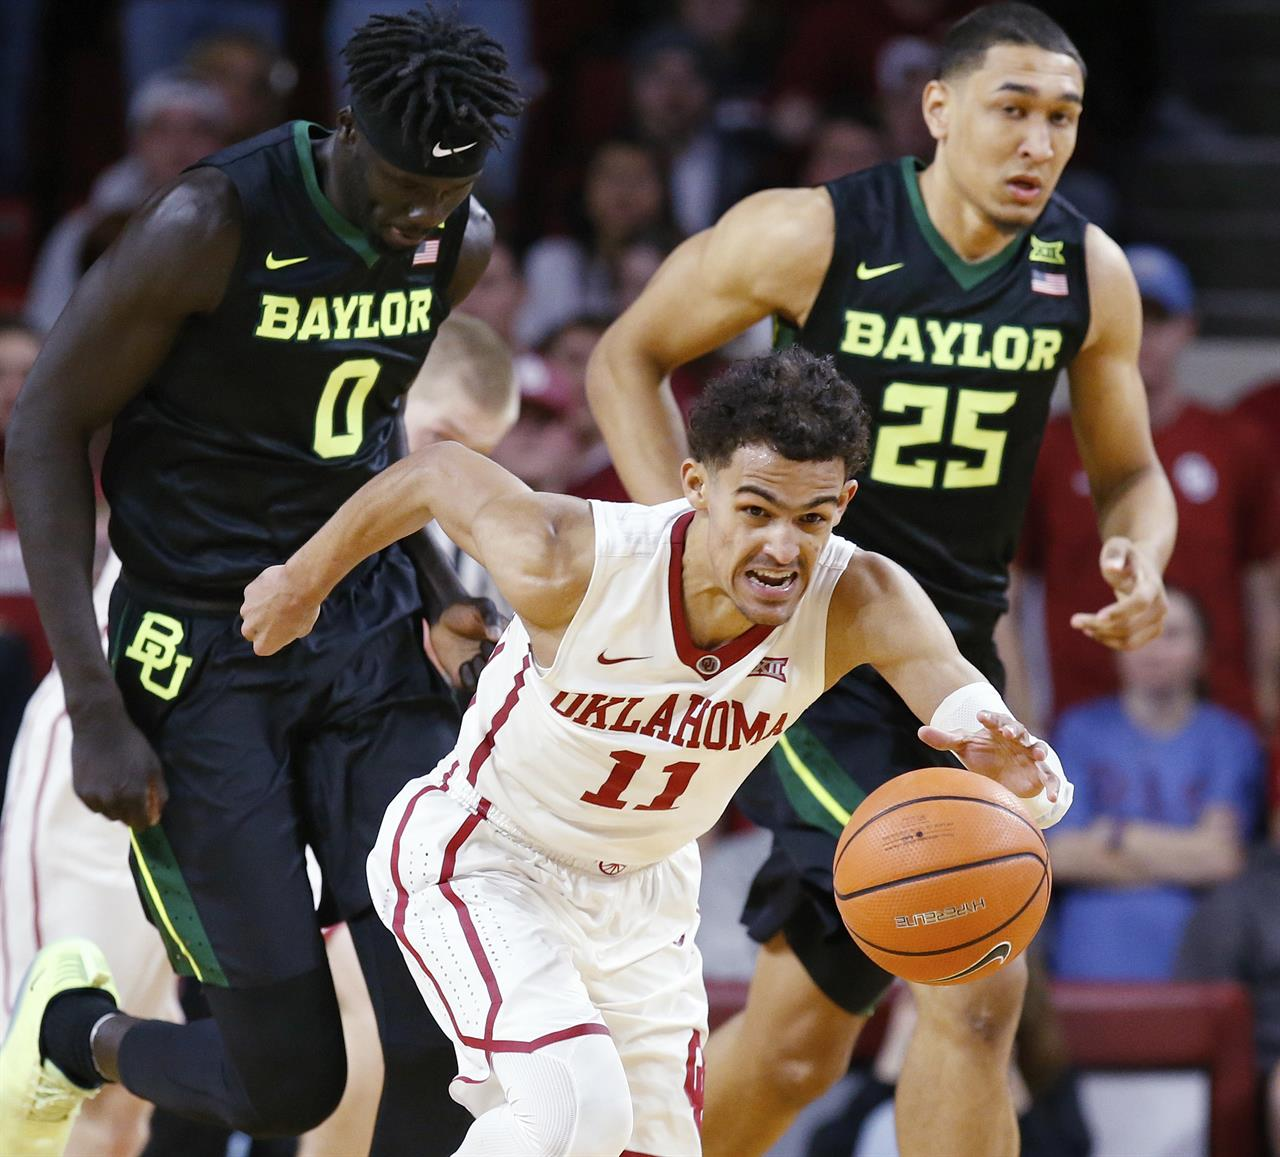 667fe93bf35f ... Oklahoma freshman Trae Young revels in role of hometown hero ...